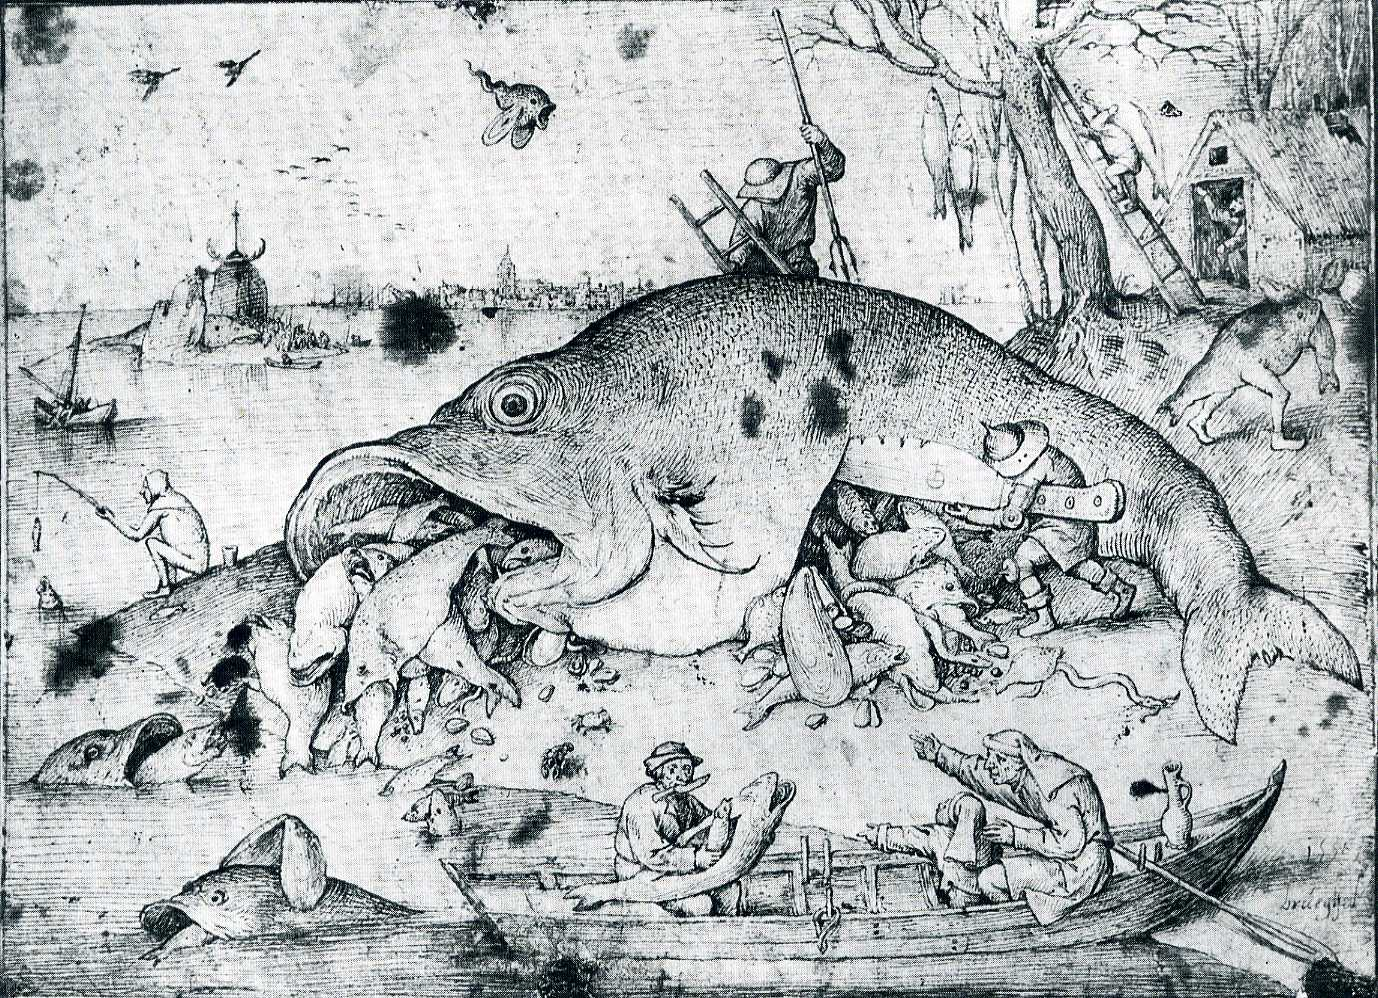 Perspective in art sound mixing gastronomy and tableaus for Big fish eat small fish